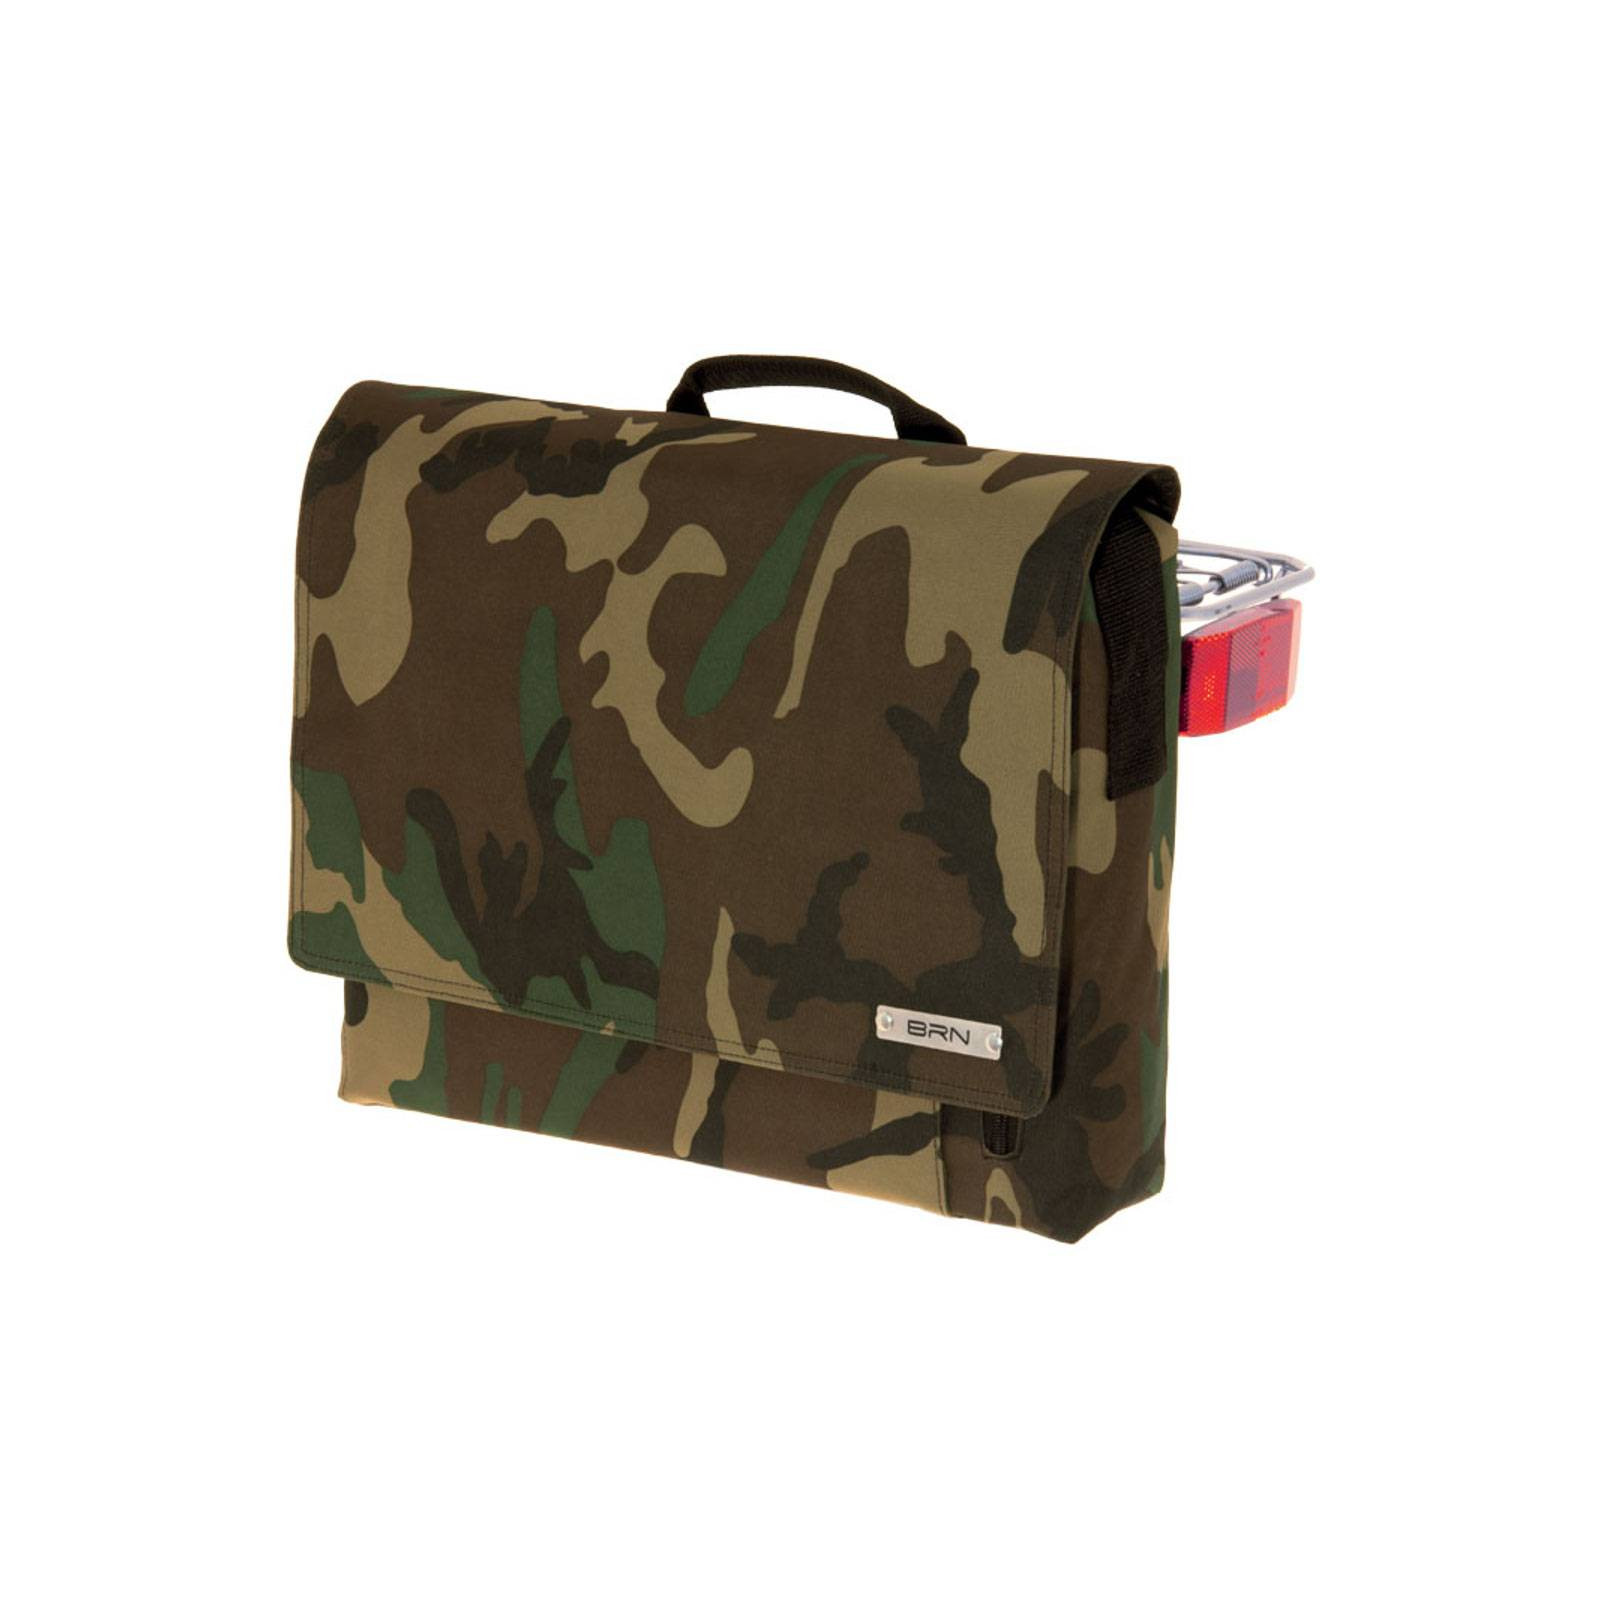 Bicycle Messenger Bag 12Lt Camouflage 40 X 30